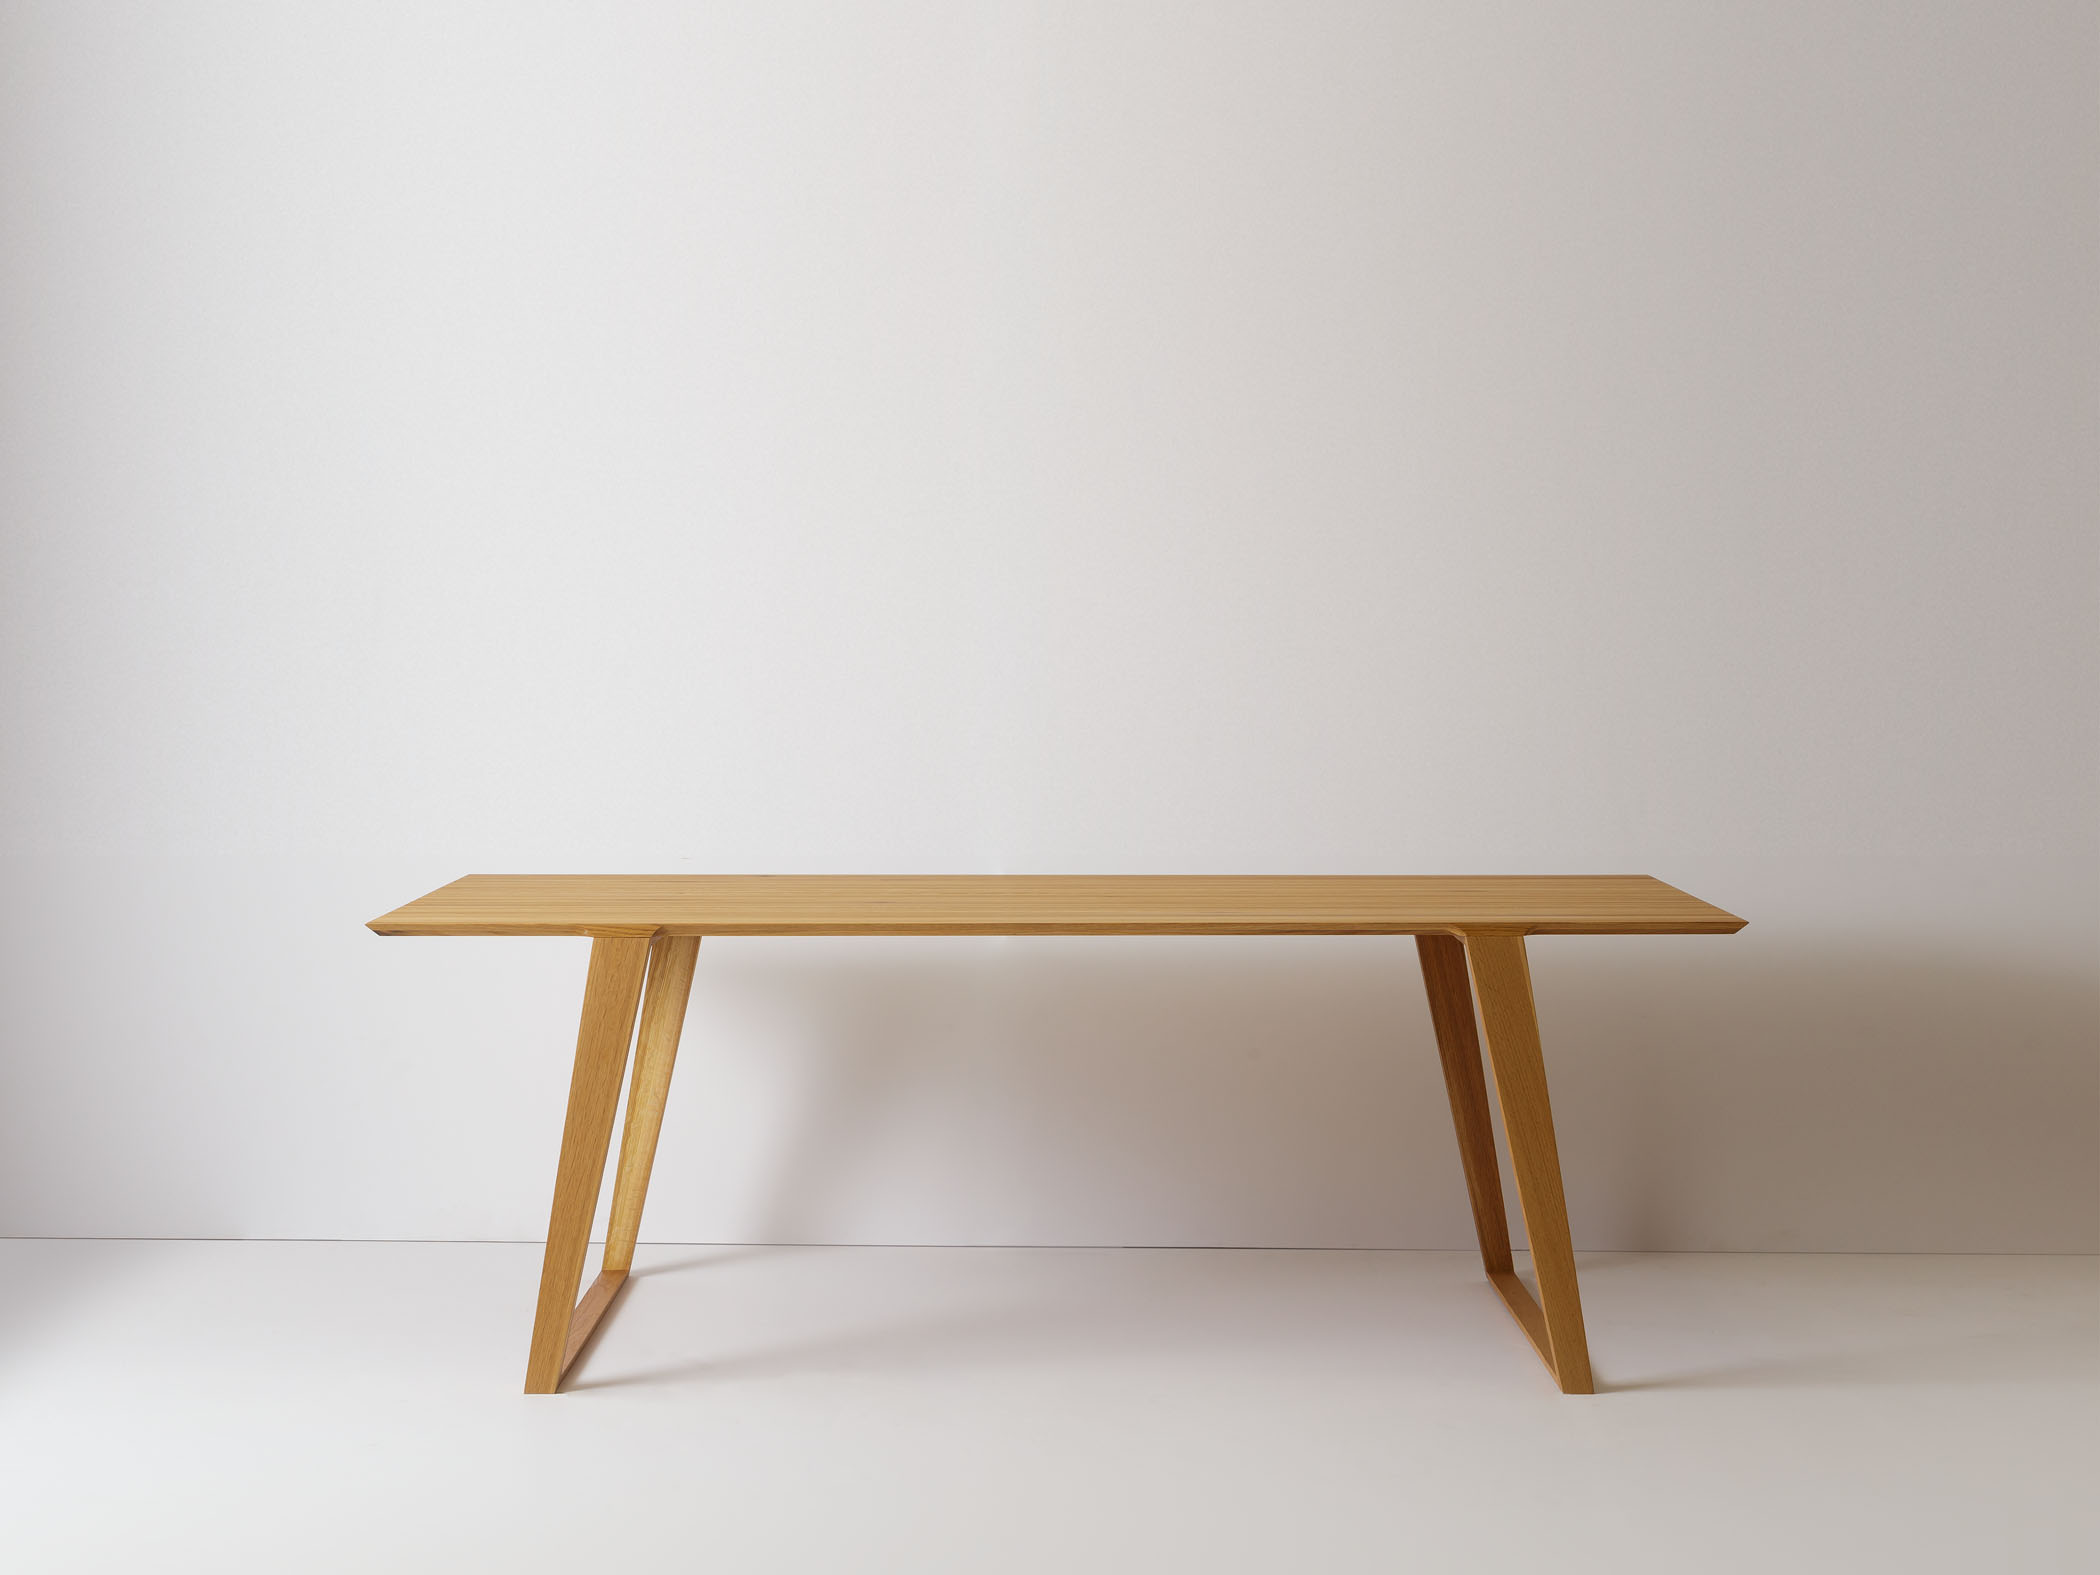 Isometric Table Modern Wood Dining Table or Desk